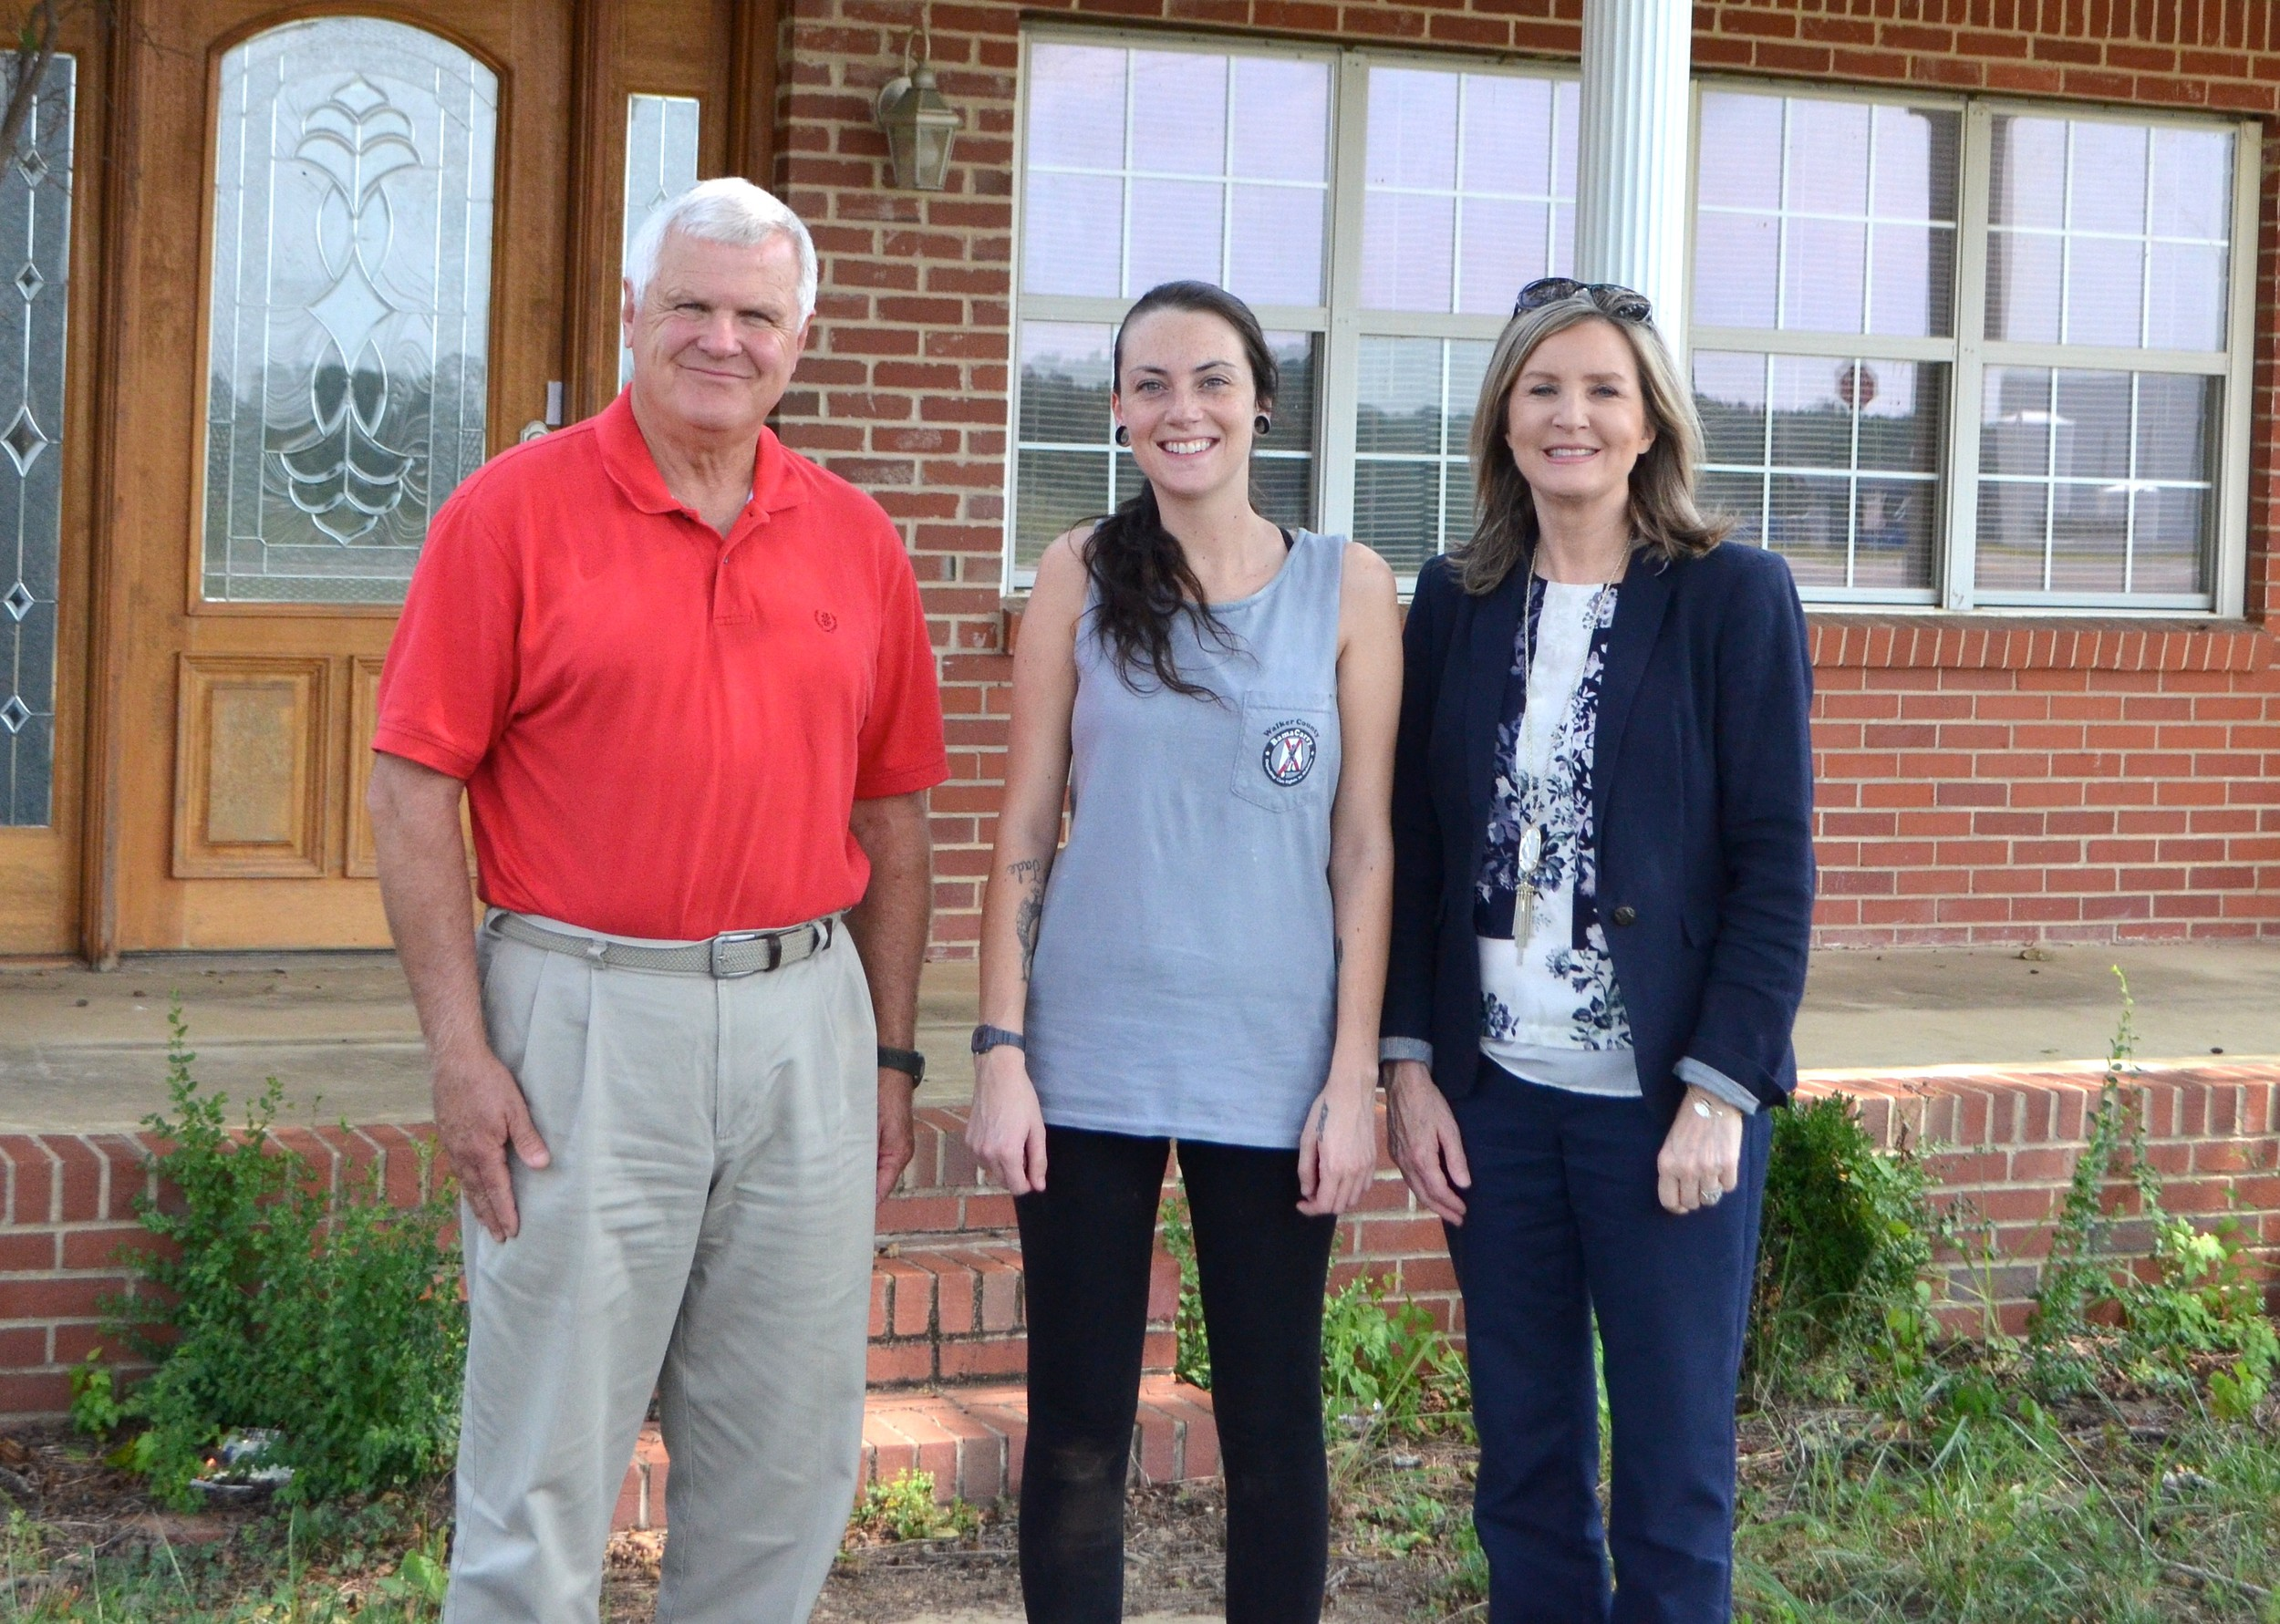 Jasper Mayor David O'Mary, left, City of Jasper Animal Shelter Manager Jesika Pilgrim, center, and Jasper City Clerk Kathy Chambless pose in front of the building that could house the city animal shelter.